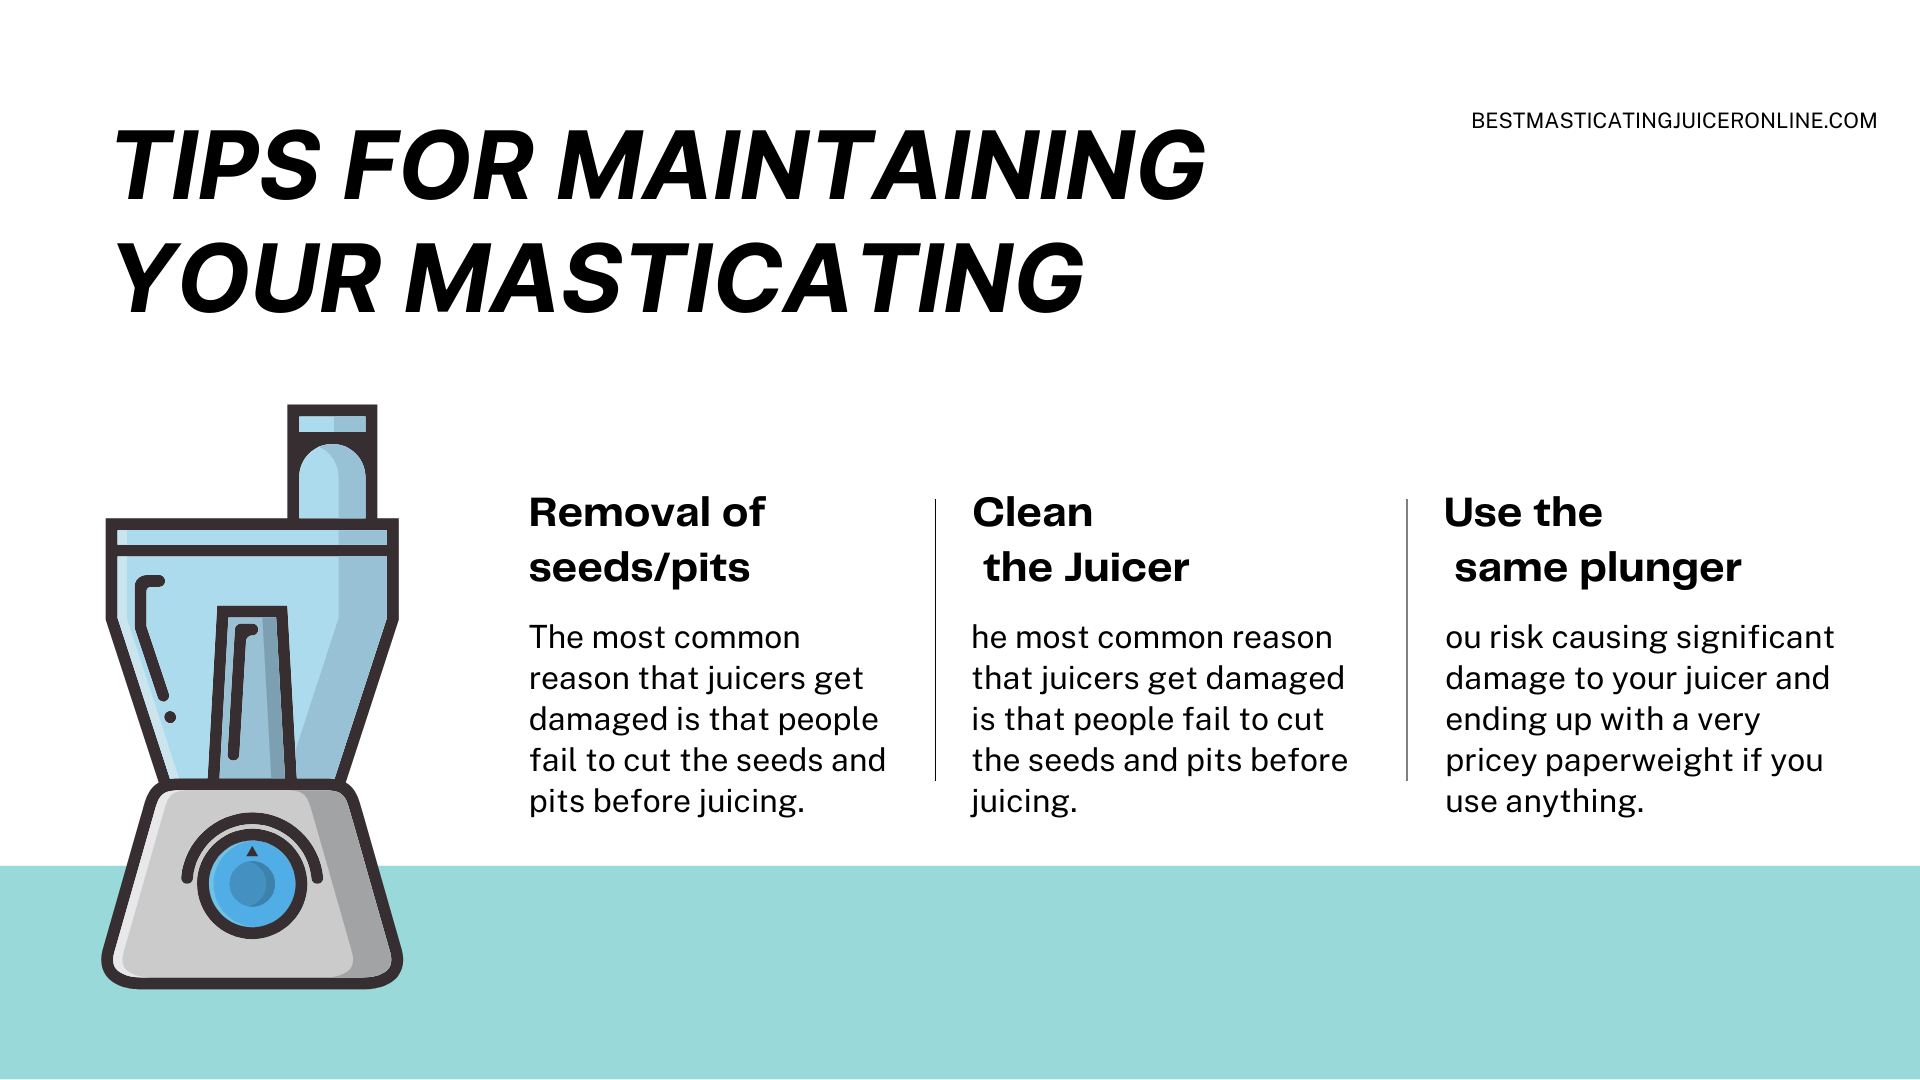 Tips for Maintaining Your Masticating